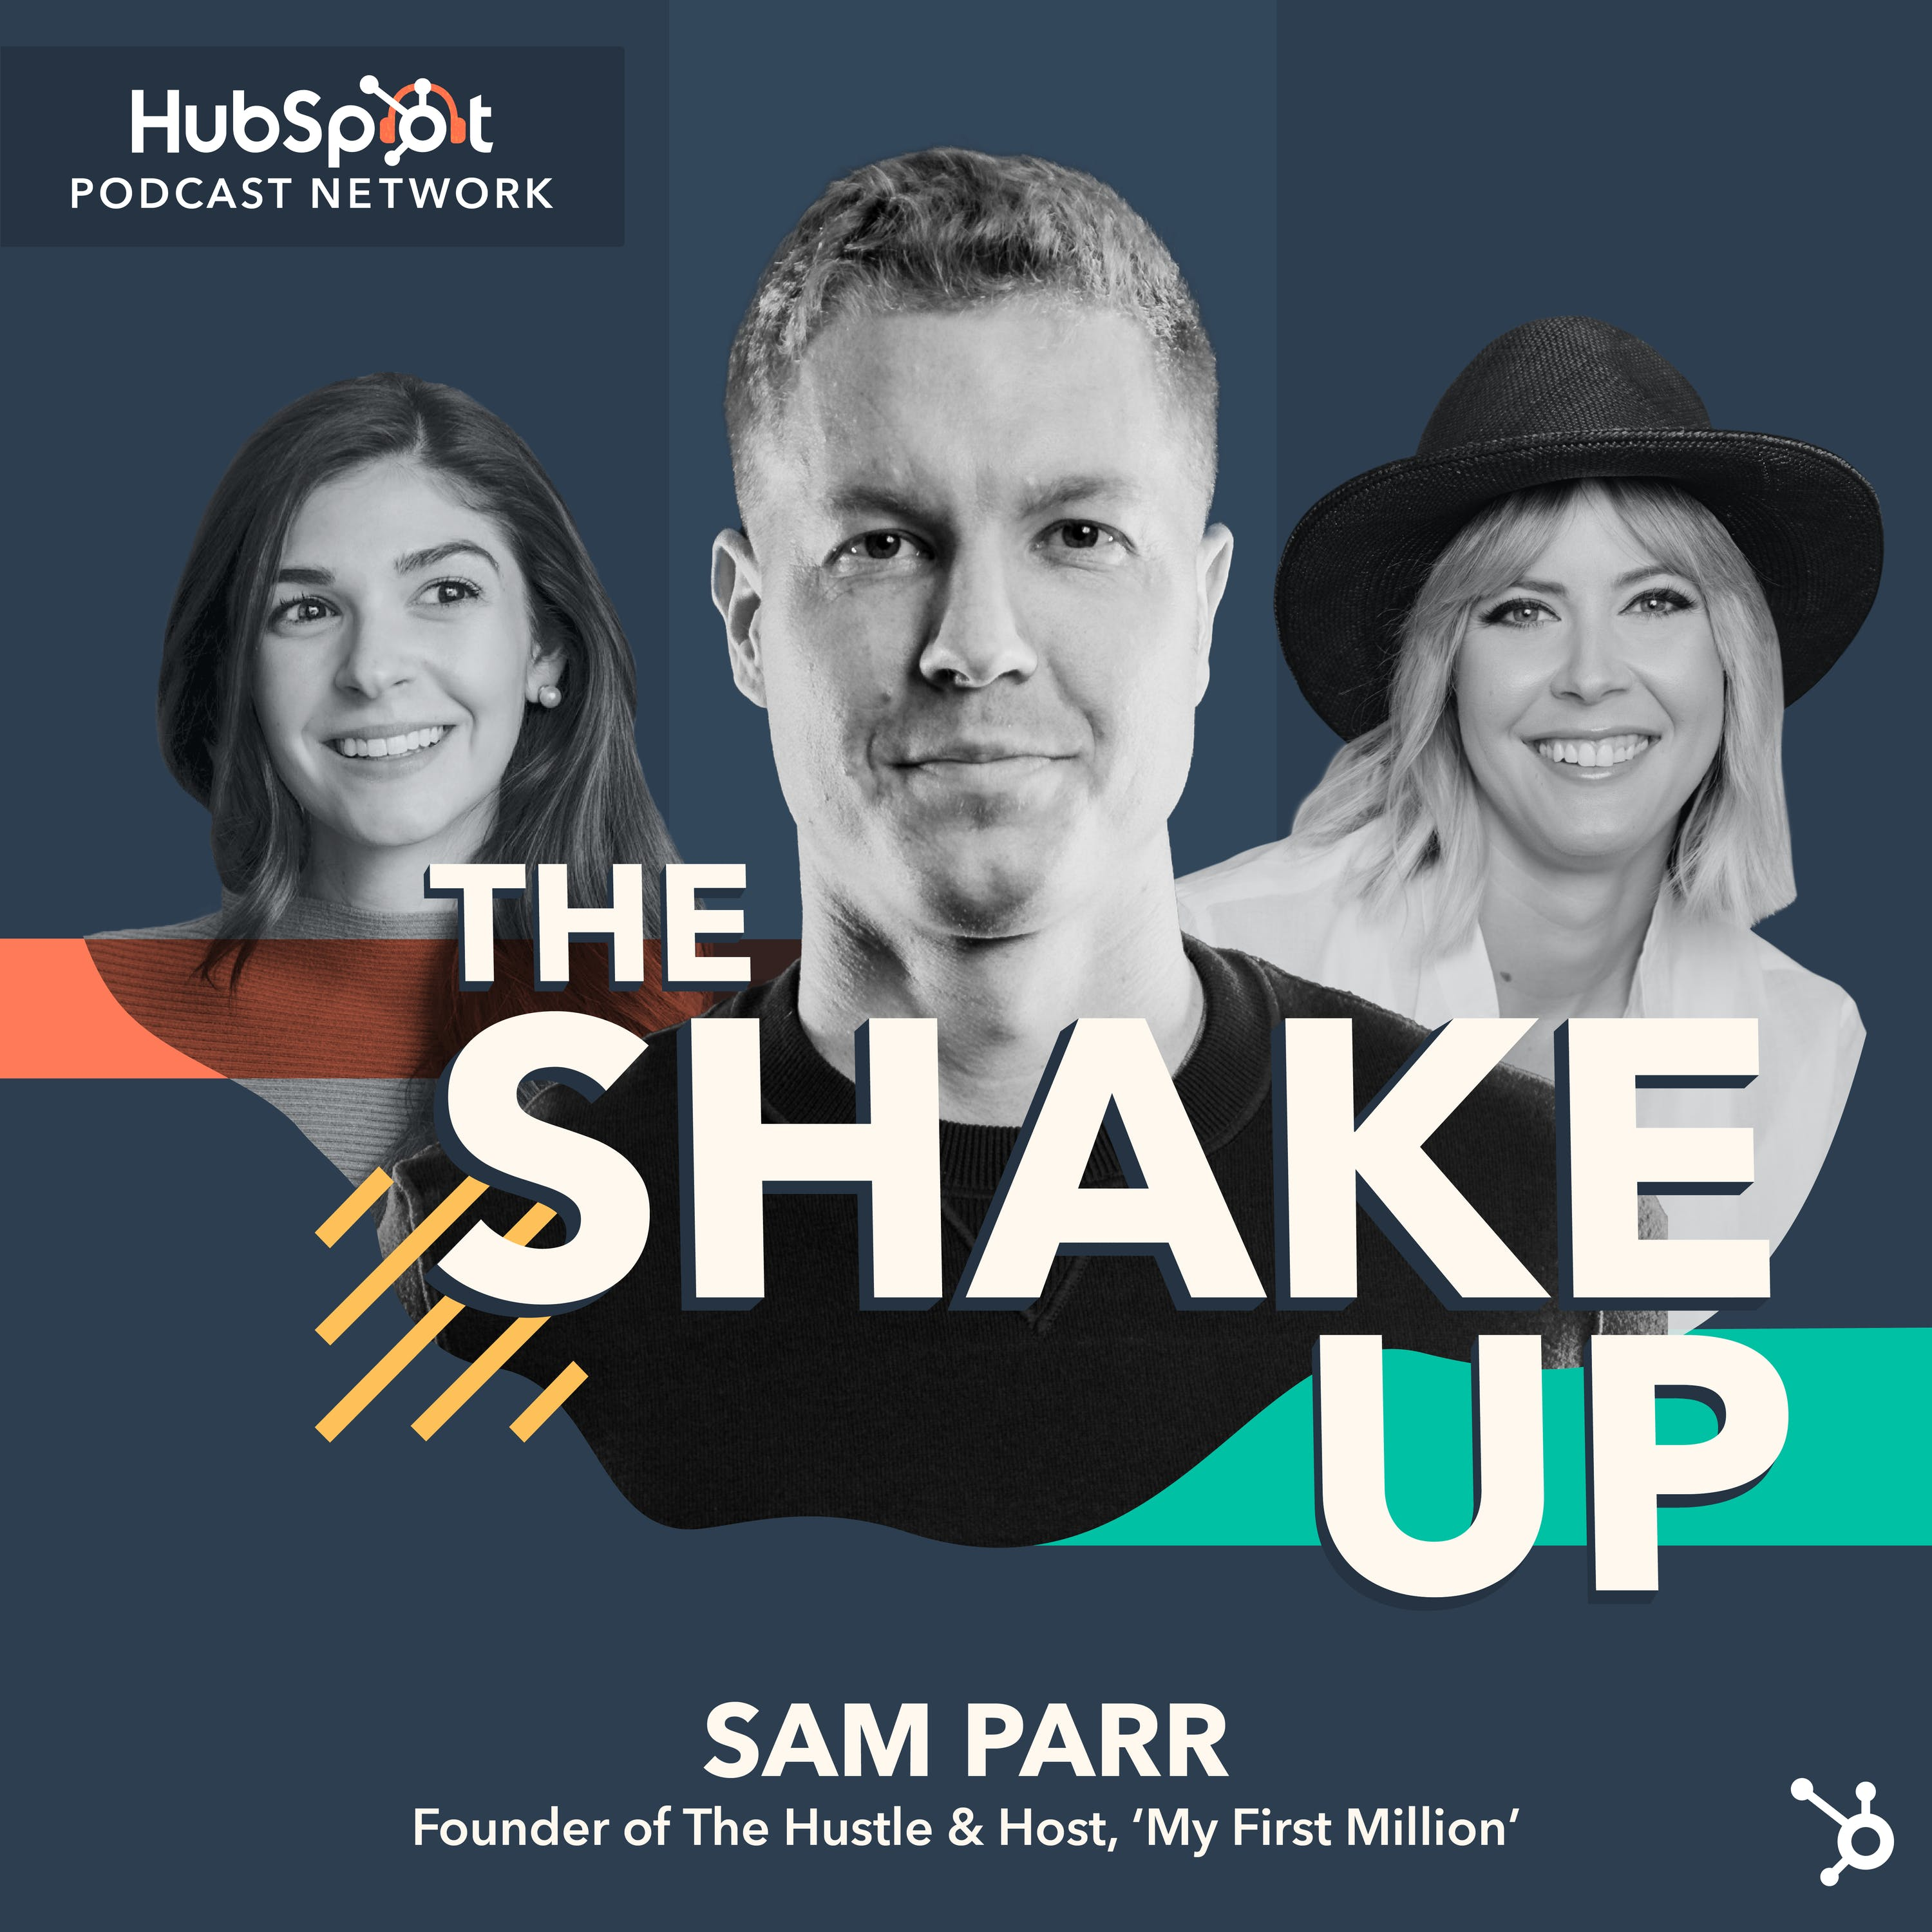 From Hot Dogs to HubSpot, Why It's Always Been About The Hustle